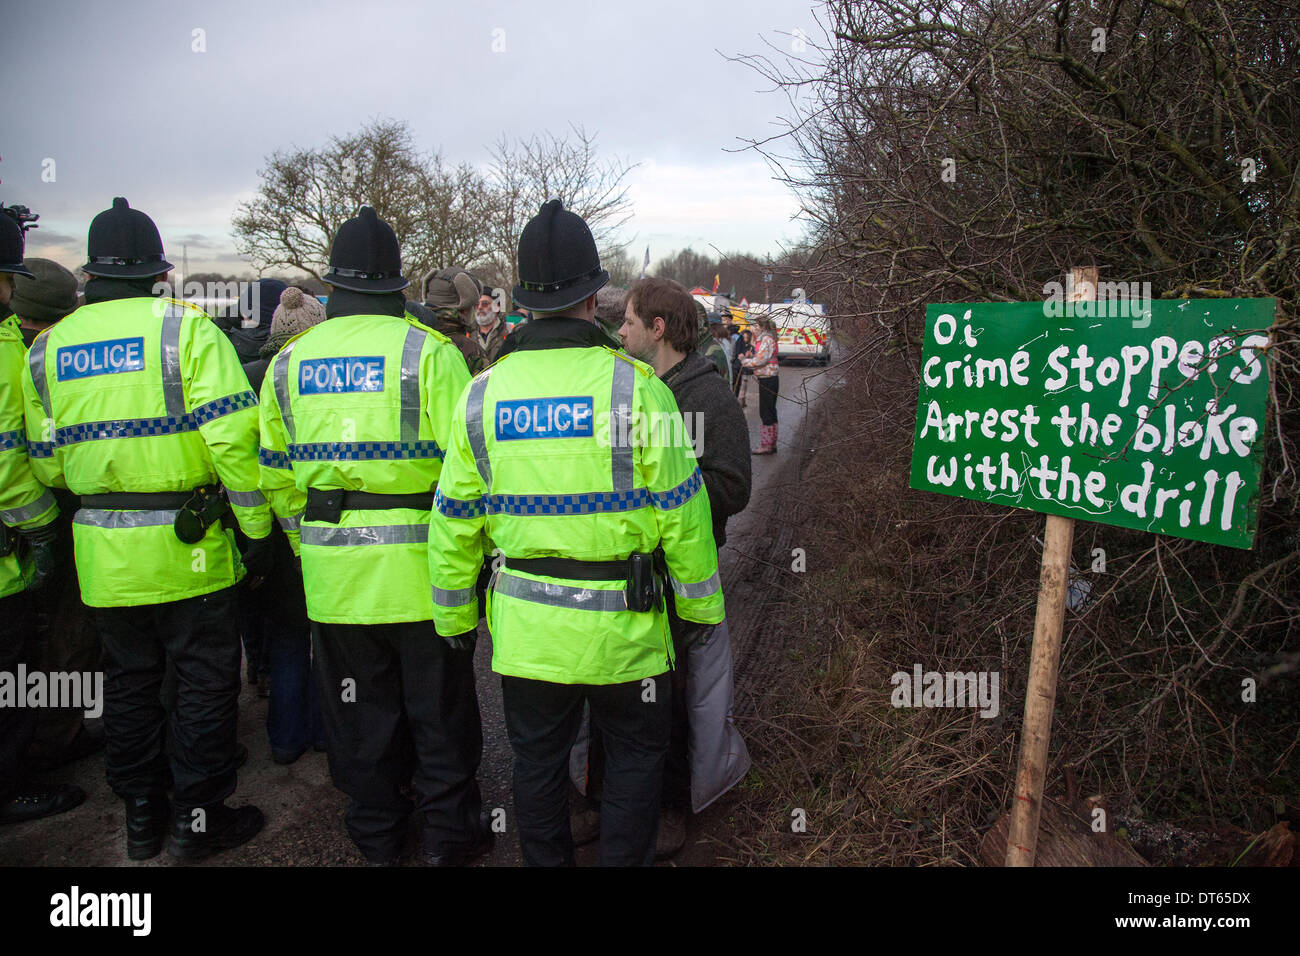 Officers in hi-vis jackets policing Barton Moss exploration site in Manchester, UK. 10th Feb, 2014. Crime Stoppers arrest the bloke with the drill' Protests by anti-fracking campaigners and a policing operation by Greater Manchester Police continue at IGAS Drilling Site at Barton Moss. Protestors are seeking to delay and obstruct delivery vehicles and drilling equipment en-route to the controversial gas exploration site. Fracking protestors have set up a camp at Barton Moss Road, Eccles a potential methane-gas extraction site in Salford, Greater Manchester. - Stock Image